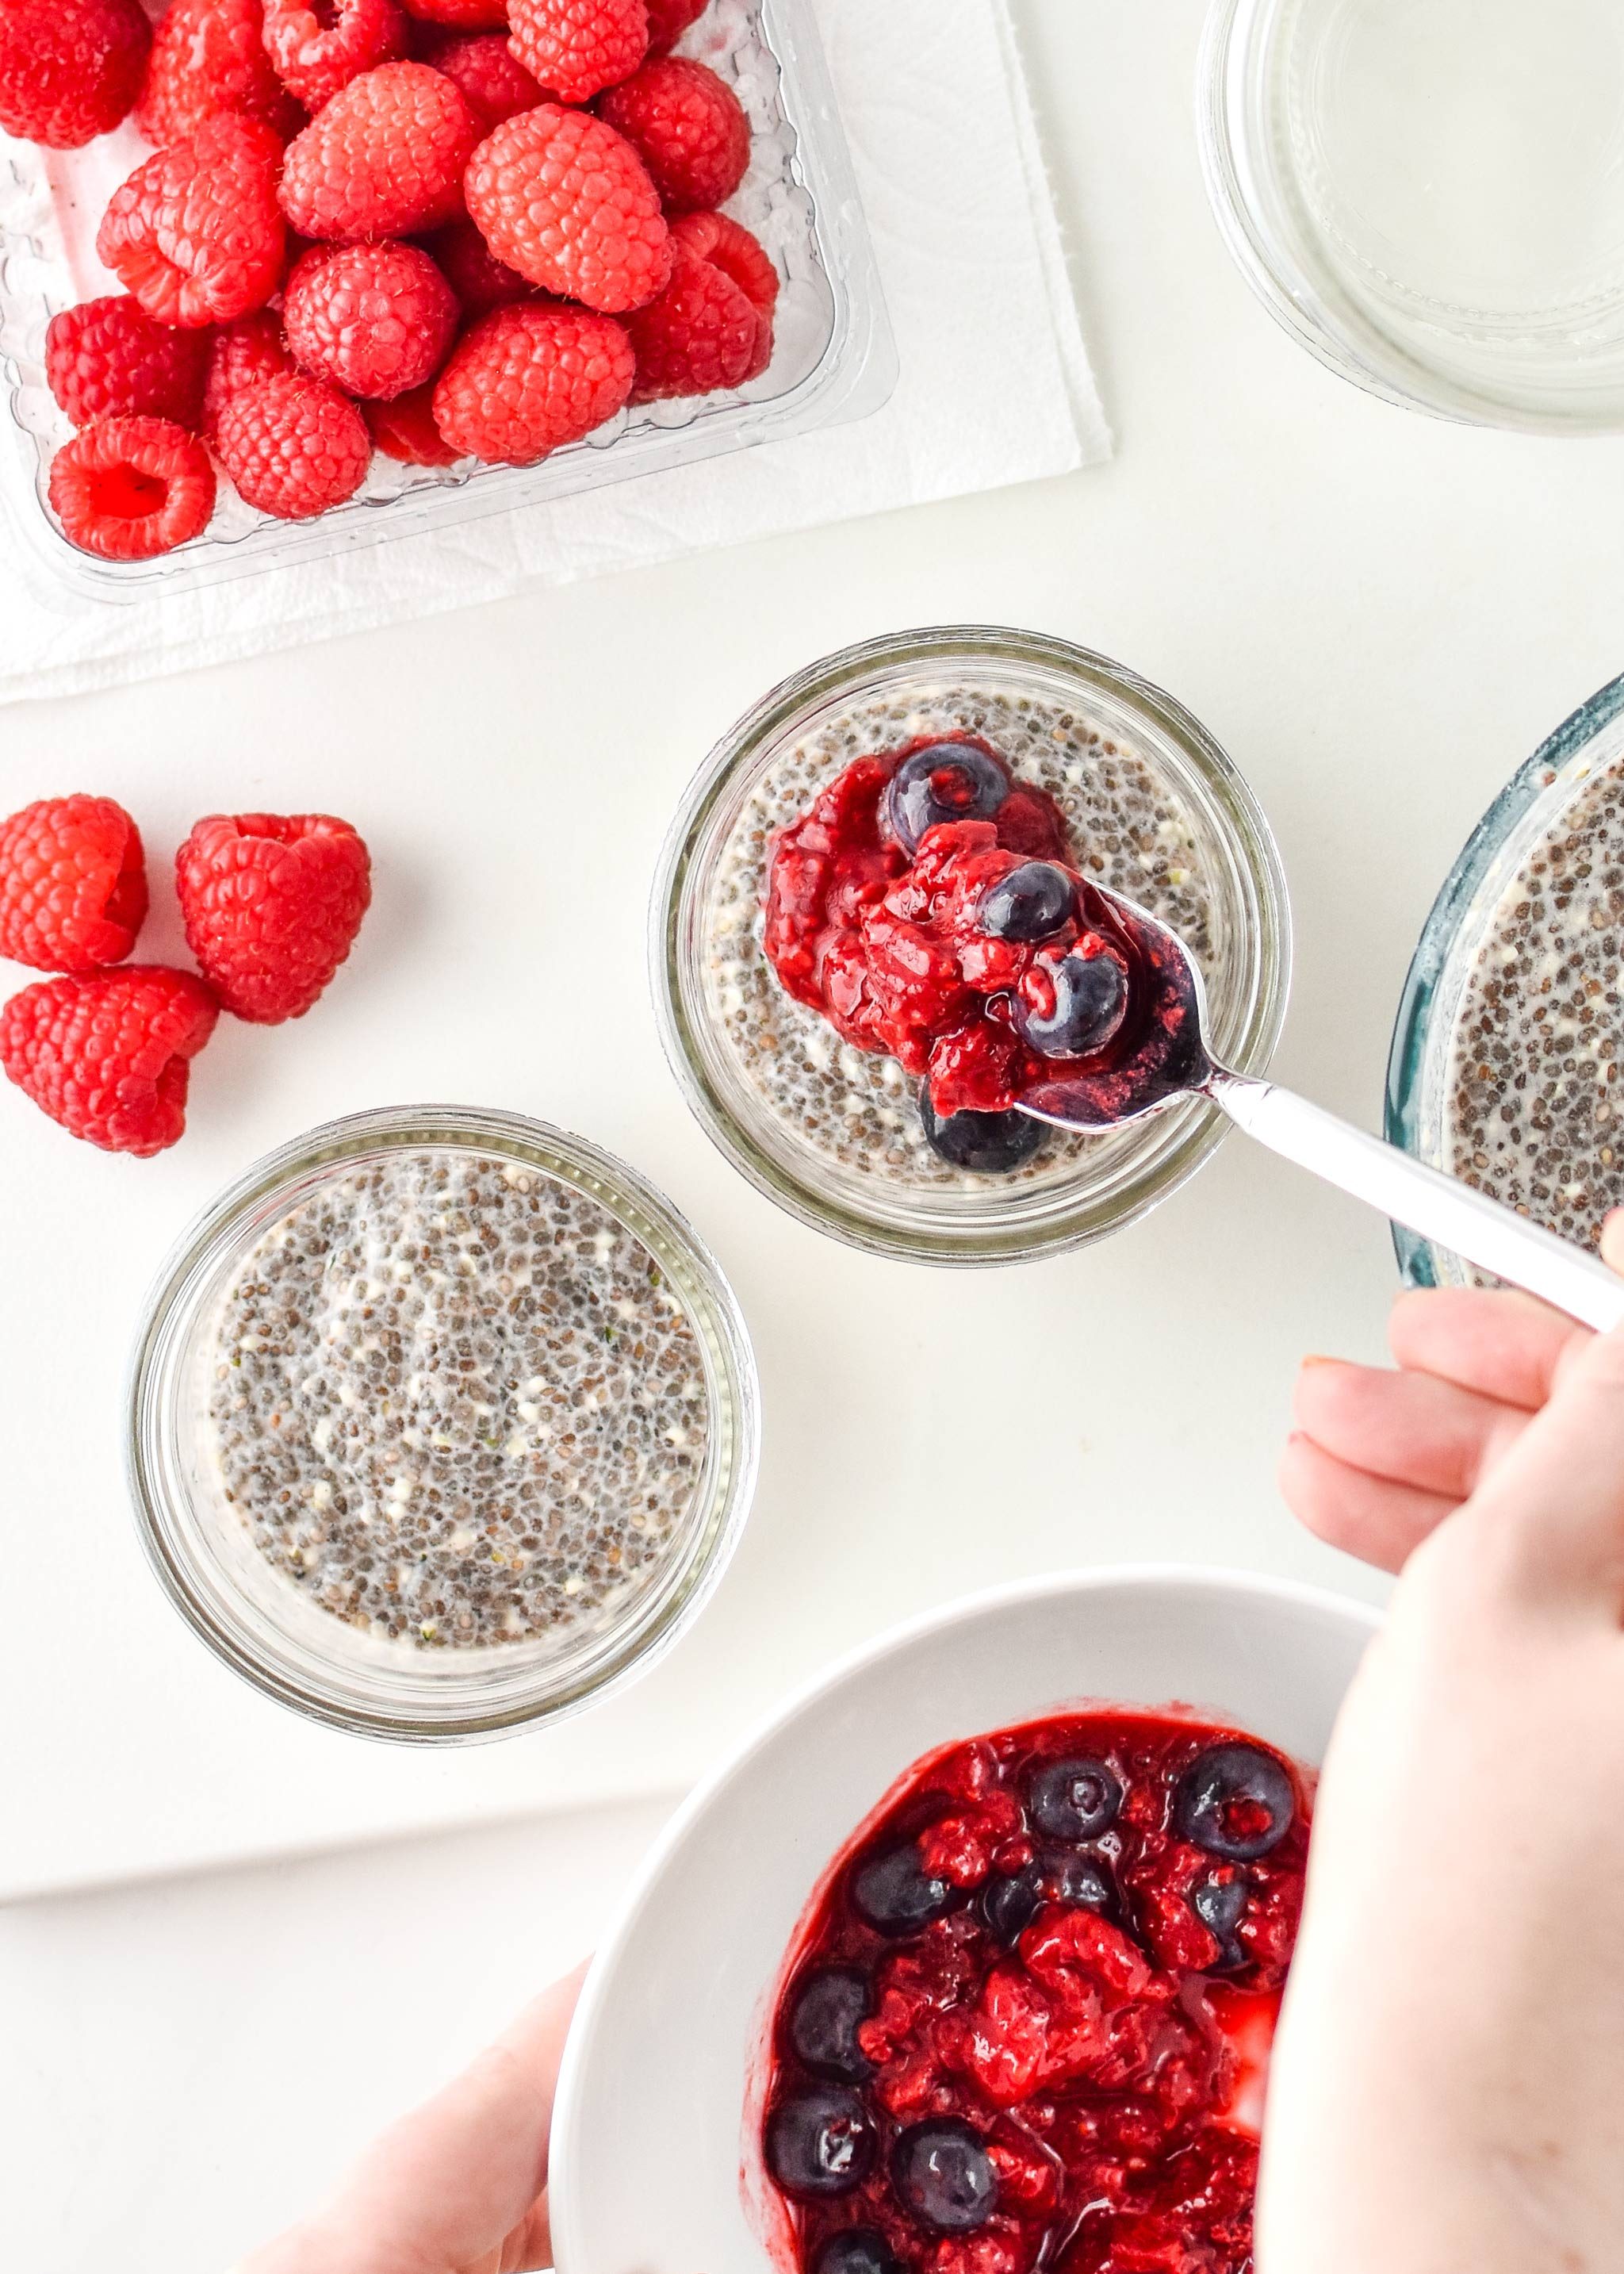 Adding mashed berries to create the chia pudding breakfast parfaits